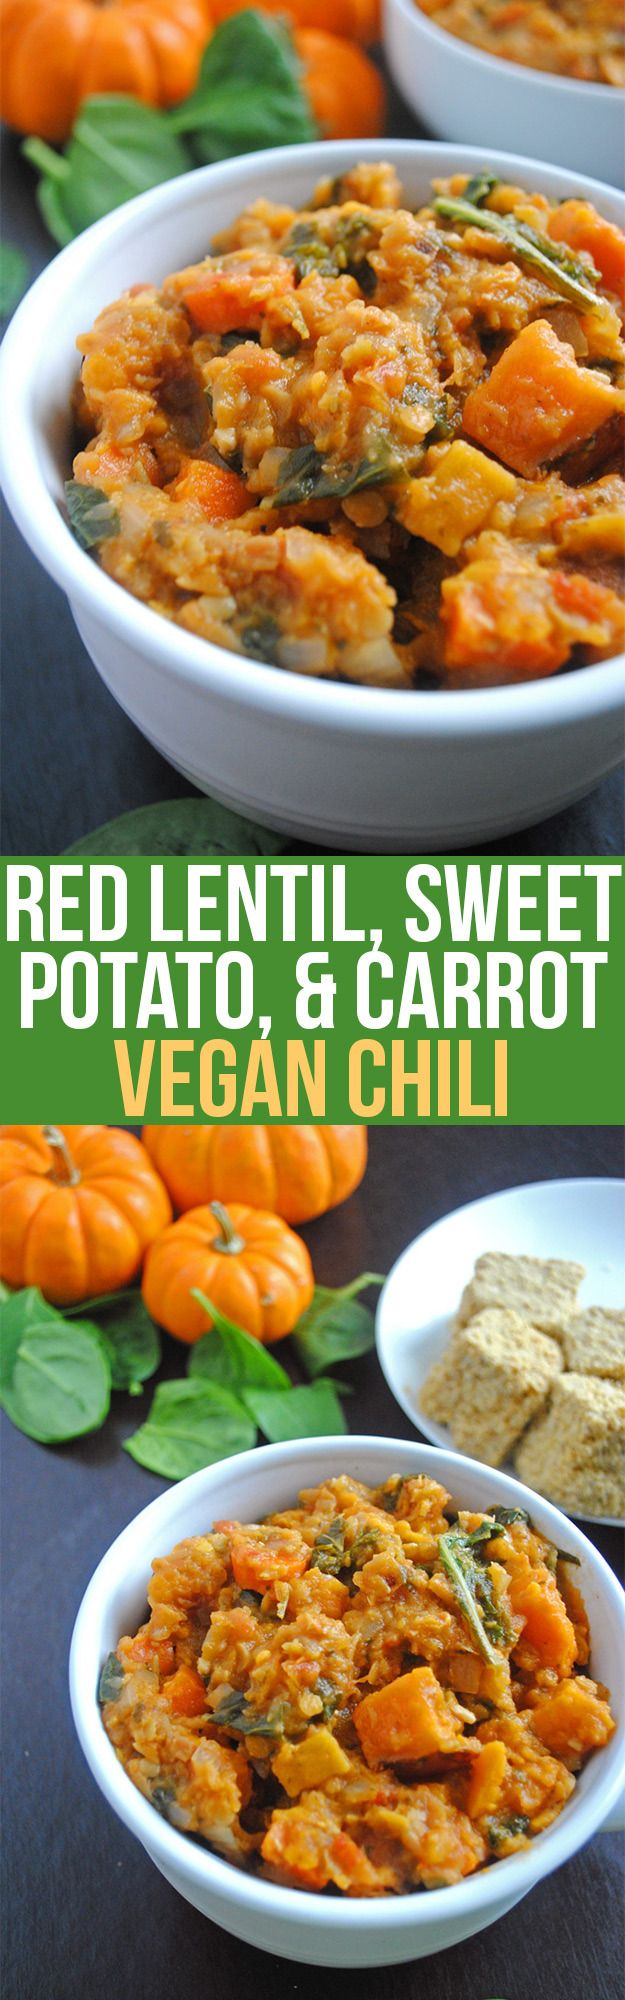 This vegan chili is hearty, comforting, and perfect for fall. Sweet potatoes and carrots add a natural sweetness, and red lentils pack protein!